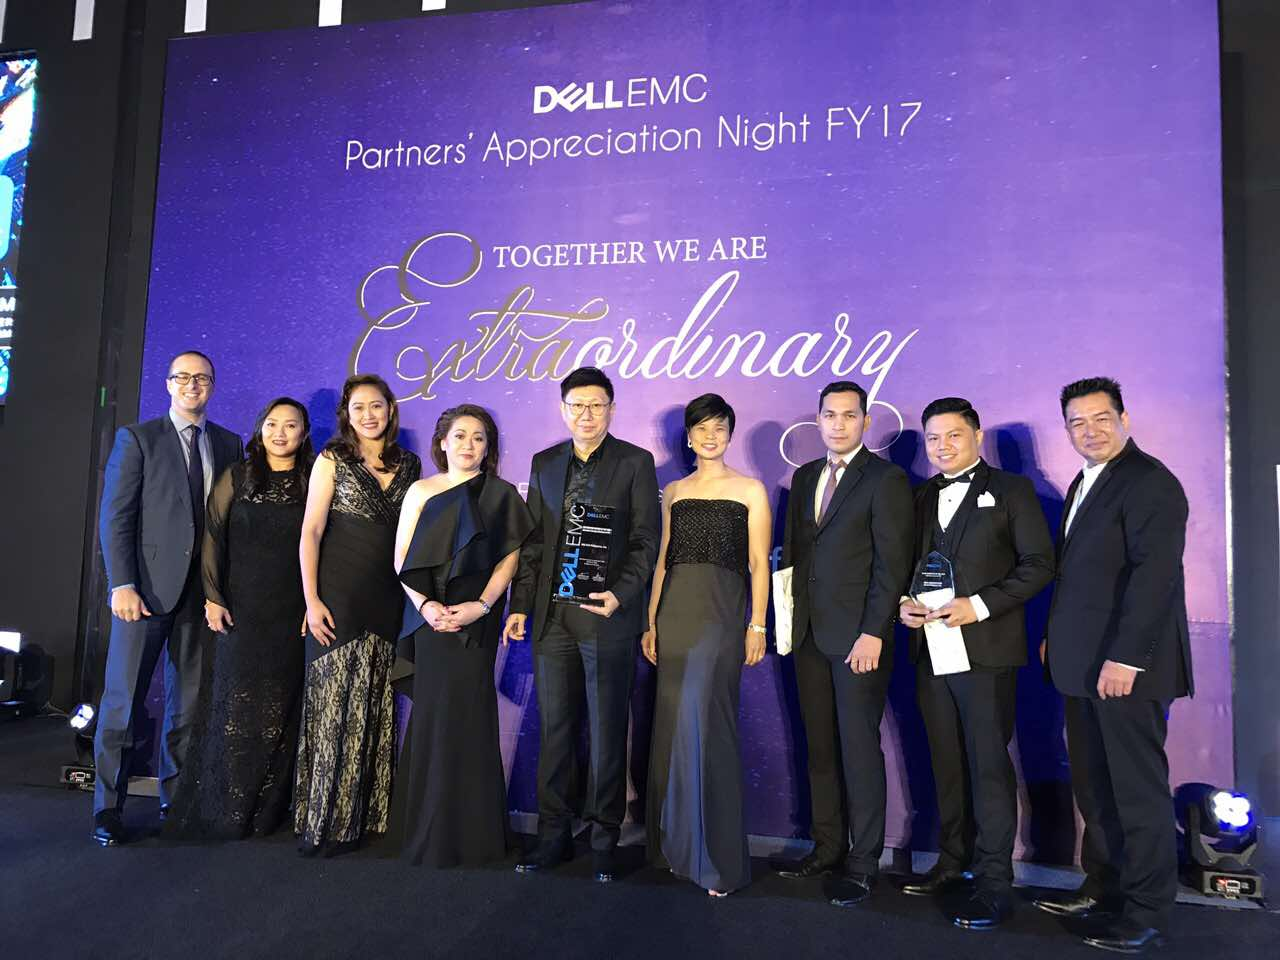 MSI-ECS sweeps Dell EMC Awards